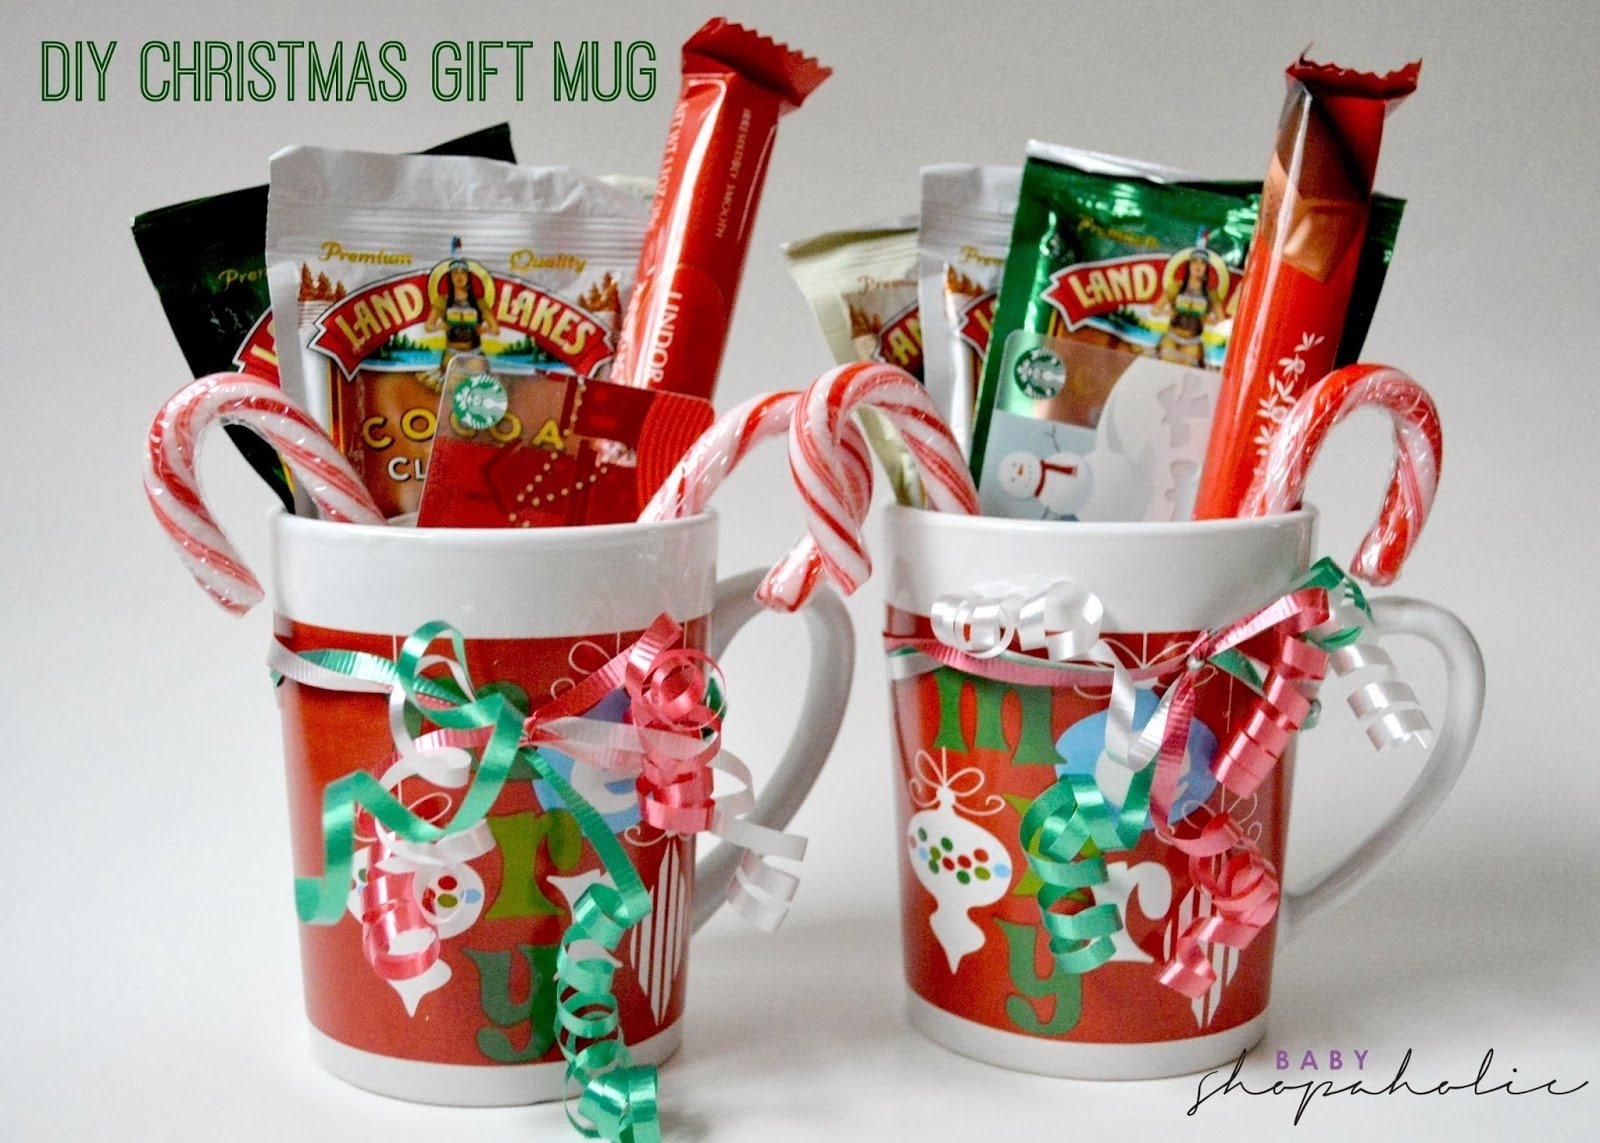 10 Stylish Christmas Gift Ideas On A Budget cheap homemade christmas gifts modern magazin dma homes 45859 4